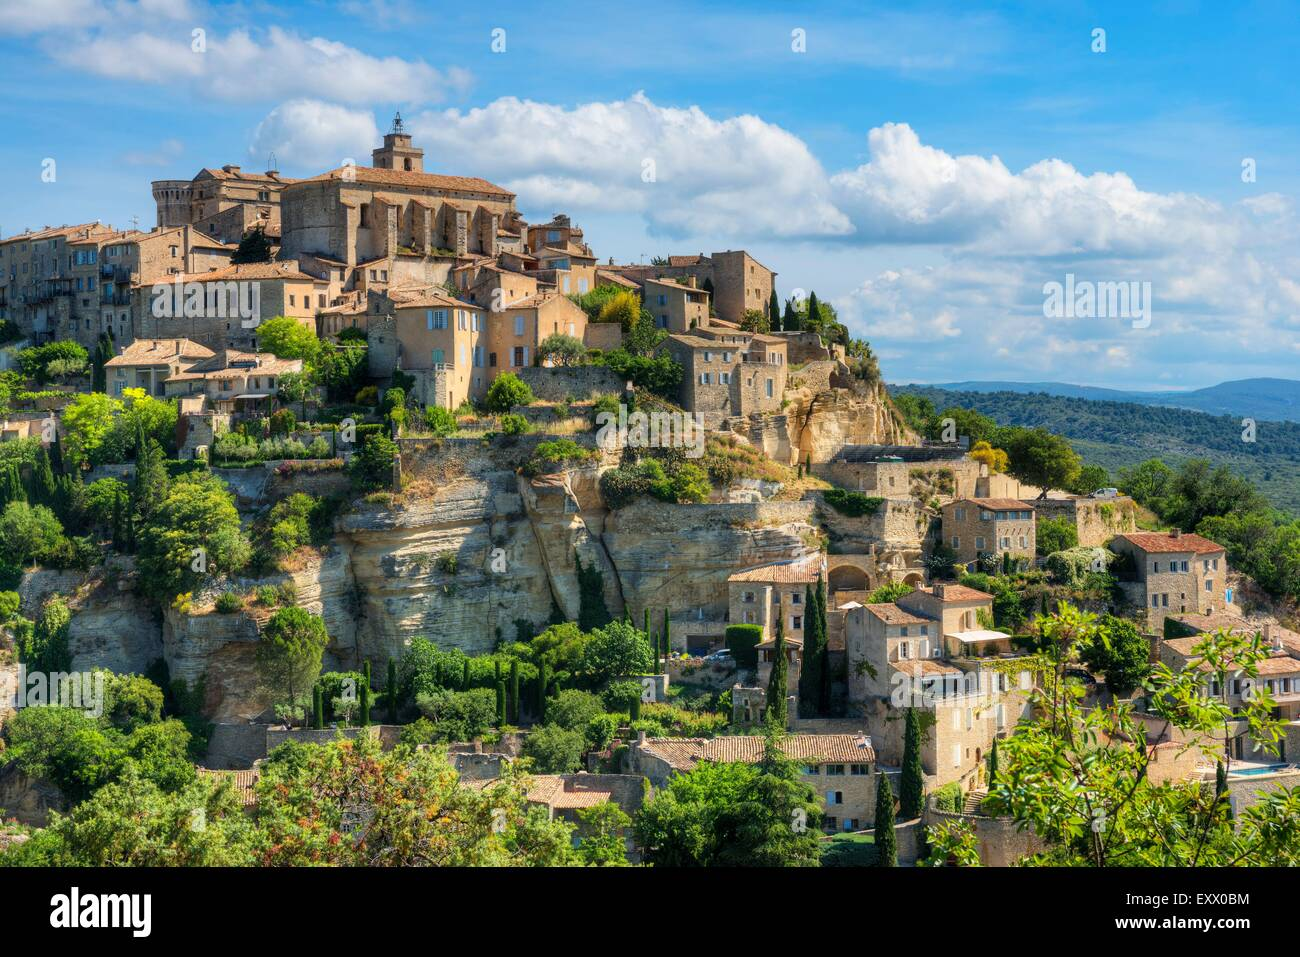 gordes vaucluse provence alpes cote d azur france europe stock photo royalty free image. Black Bedroom Furniture Sets. Home Design Ideas